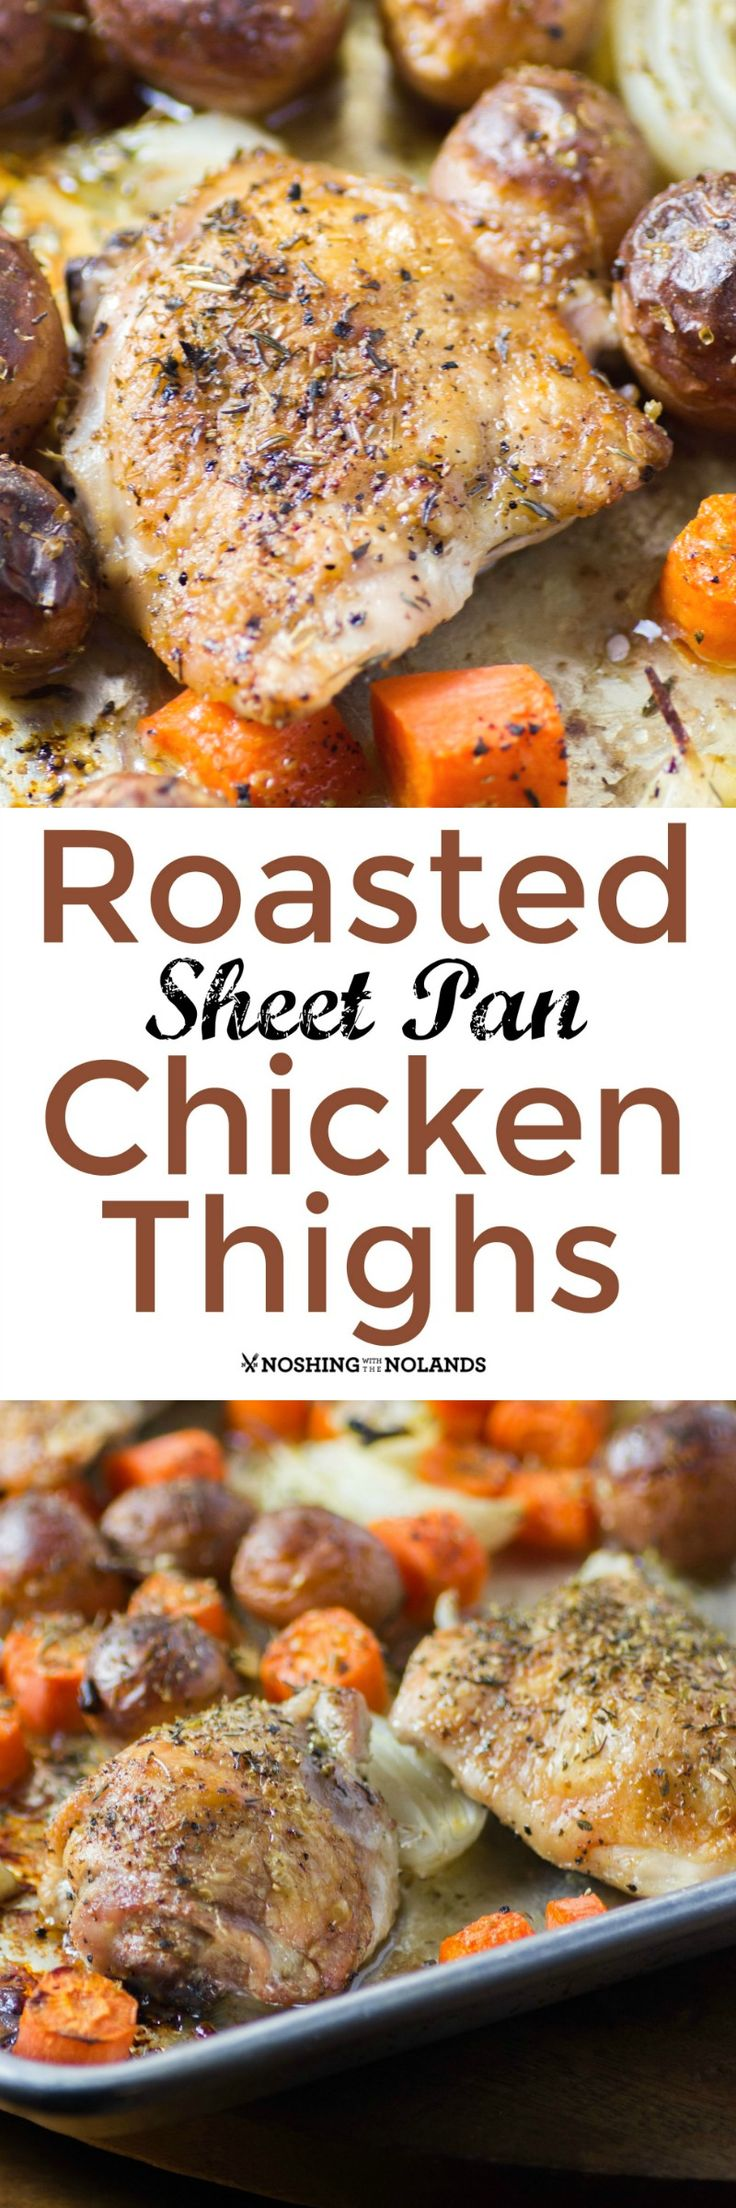 Roasted Sheet Pan Chicken Thighs is an easy meal to prepare and even easier to clean up. You'll be making it again and again!